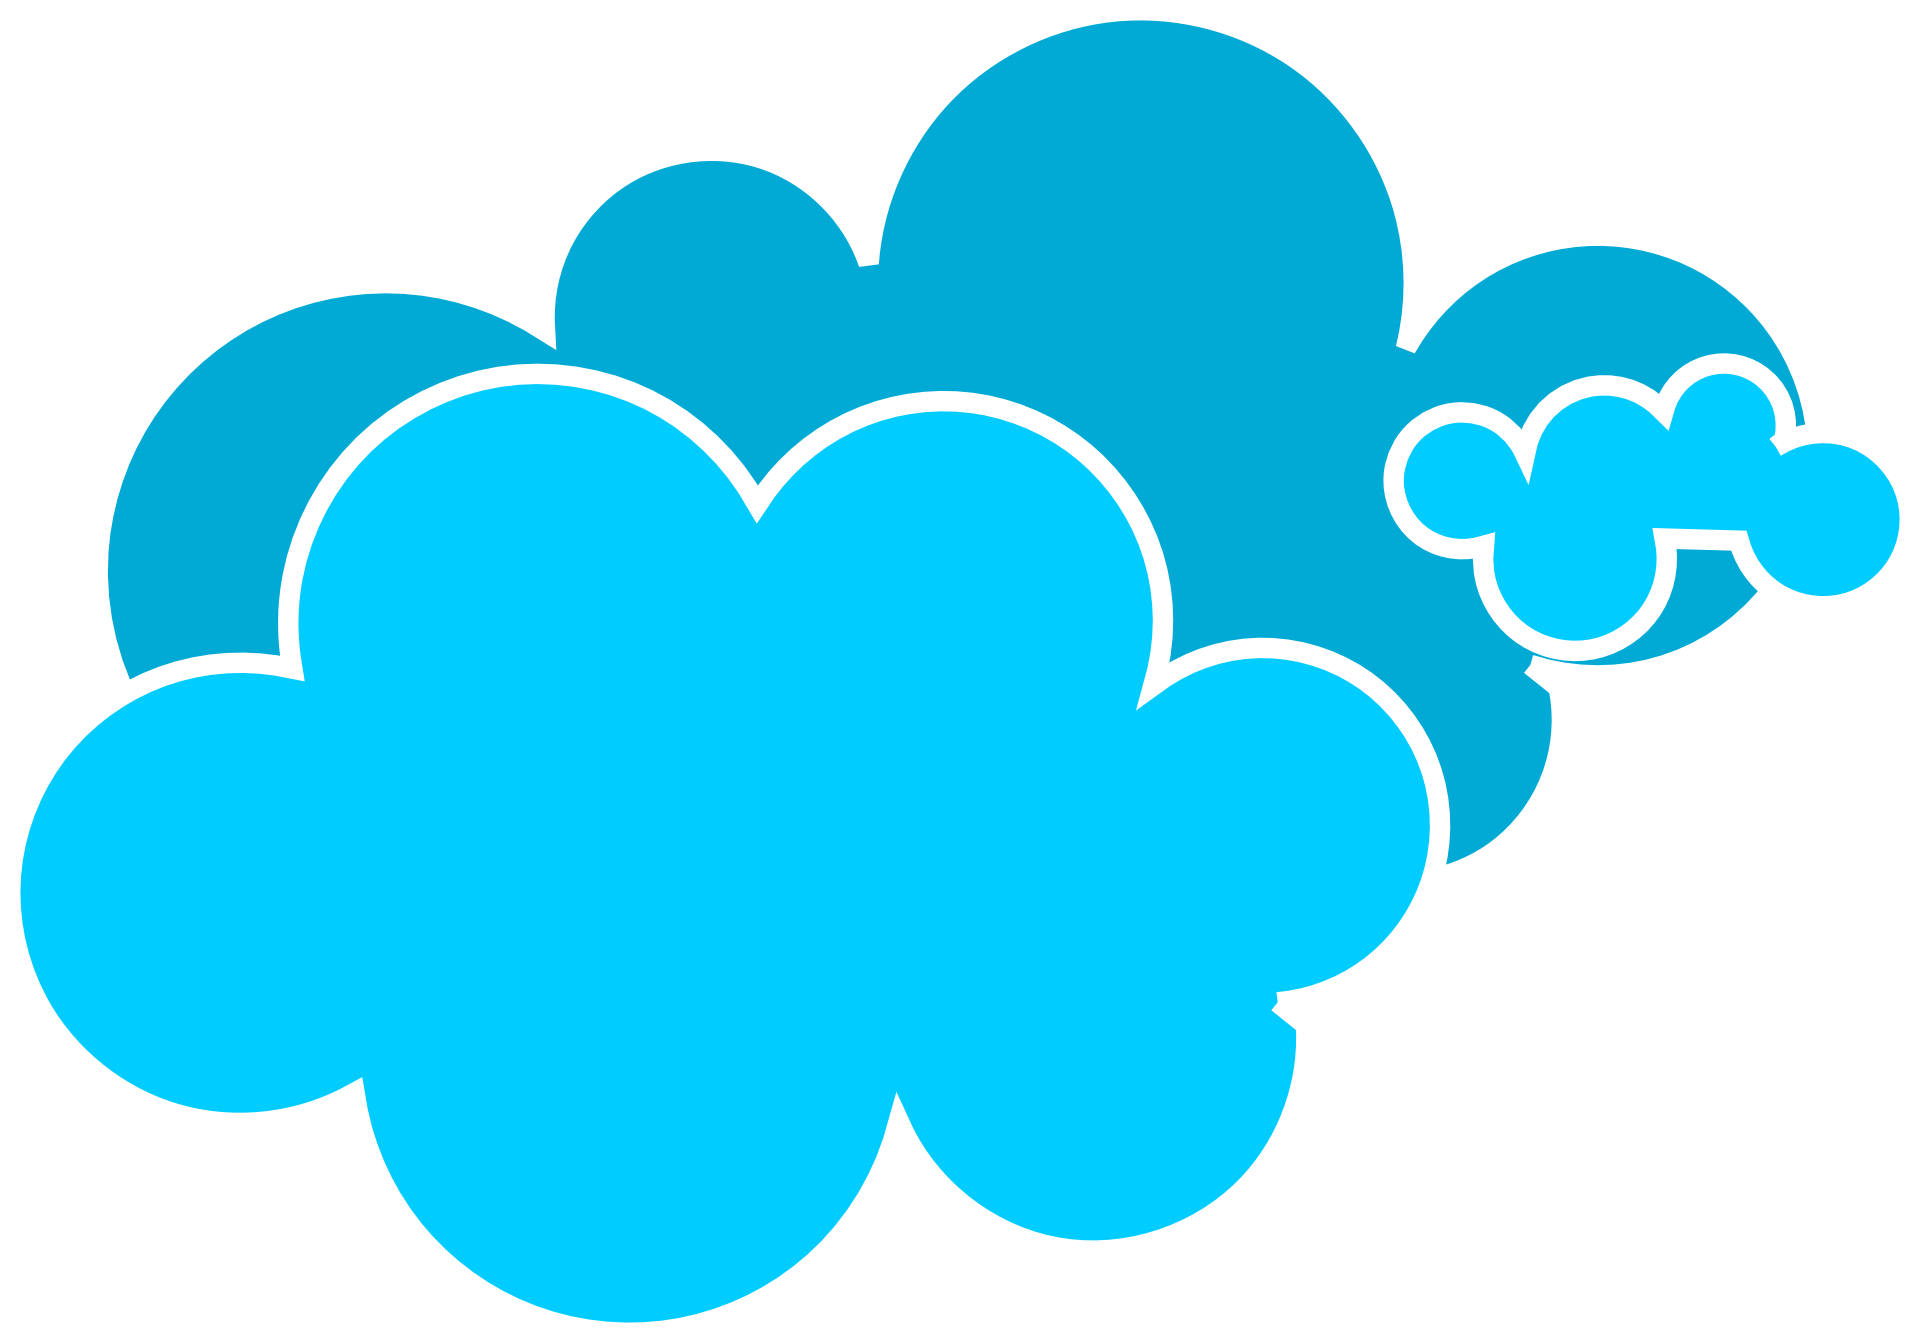 Clouds clipart cloud computing. Free content clip art